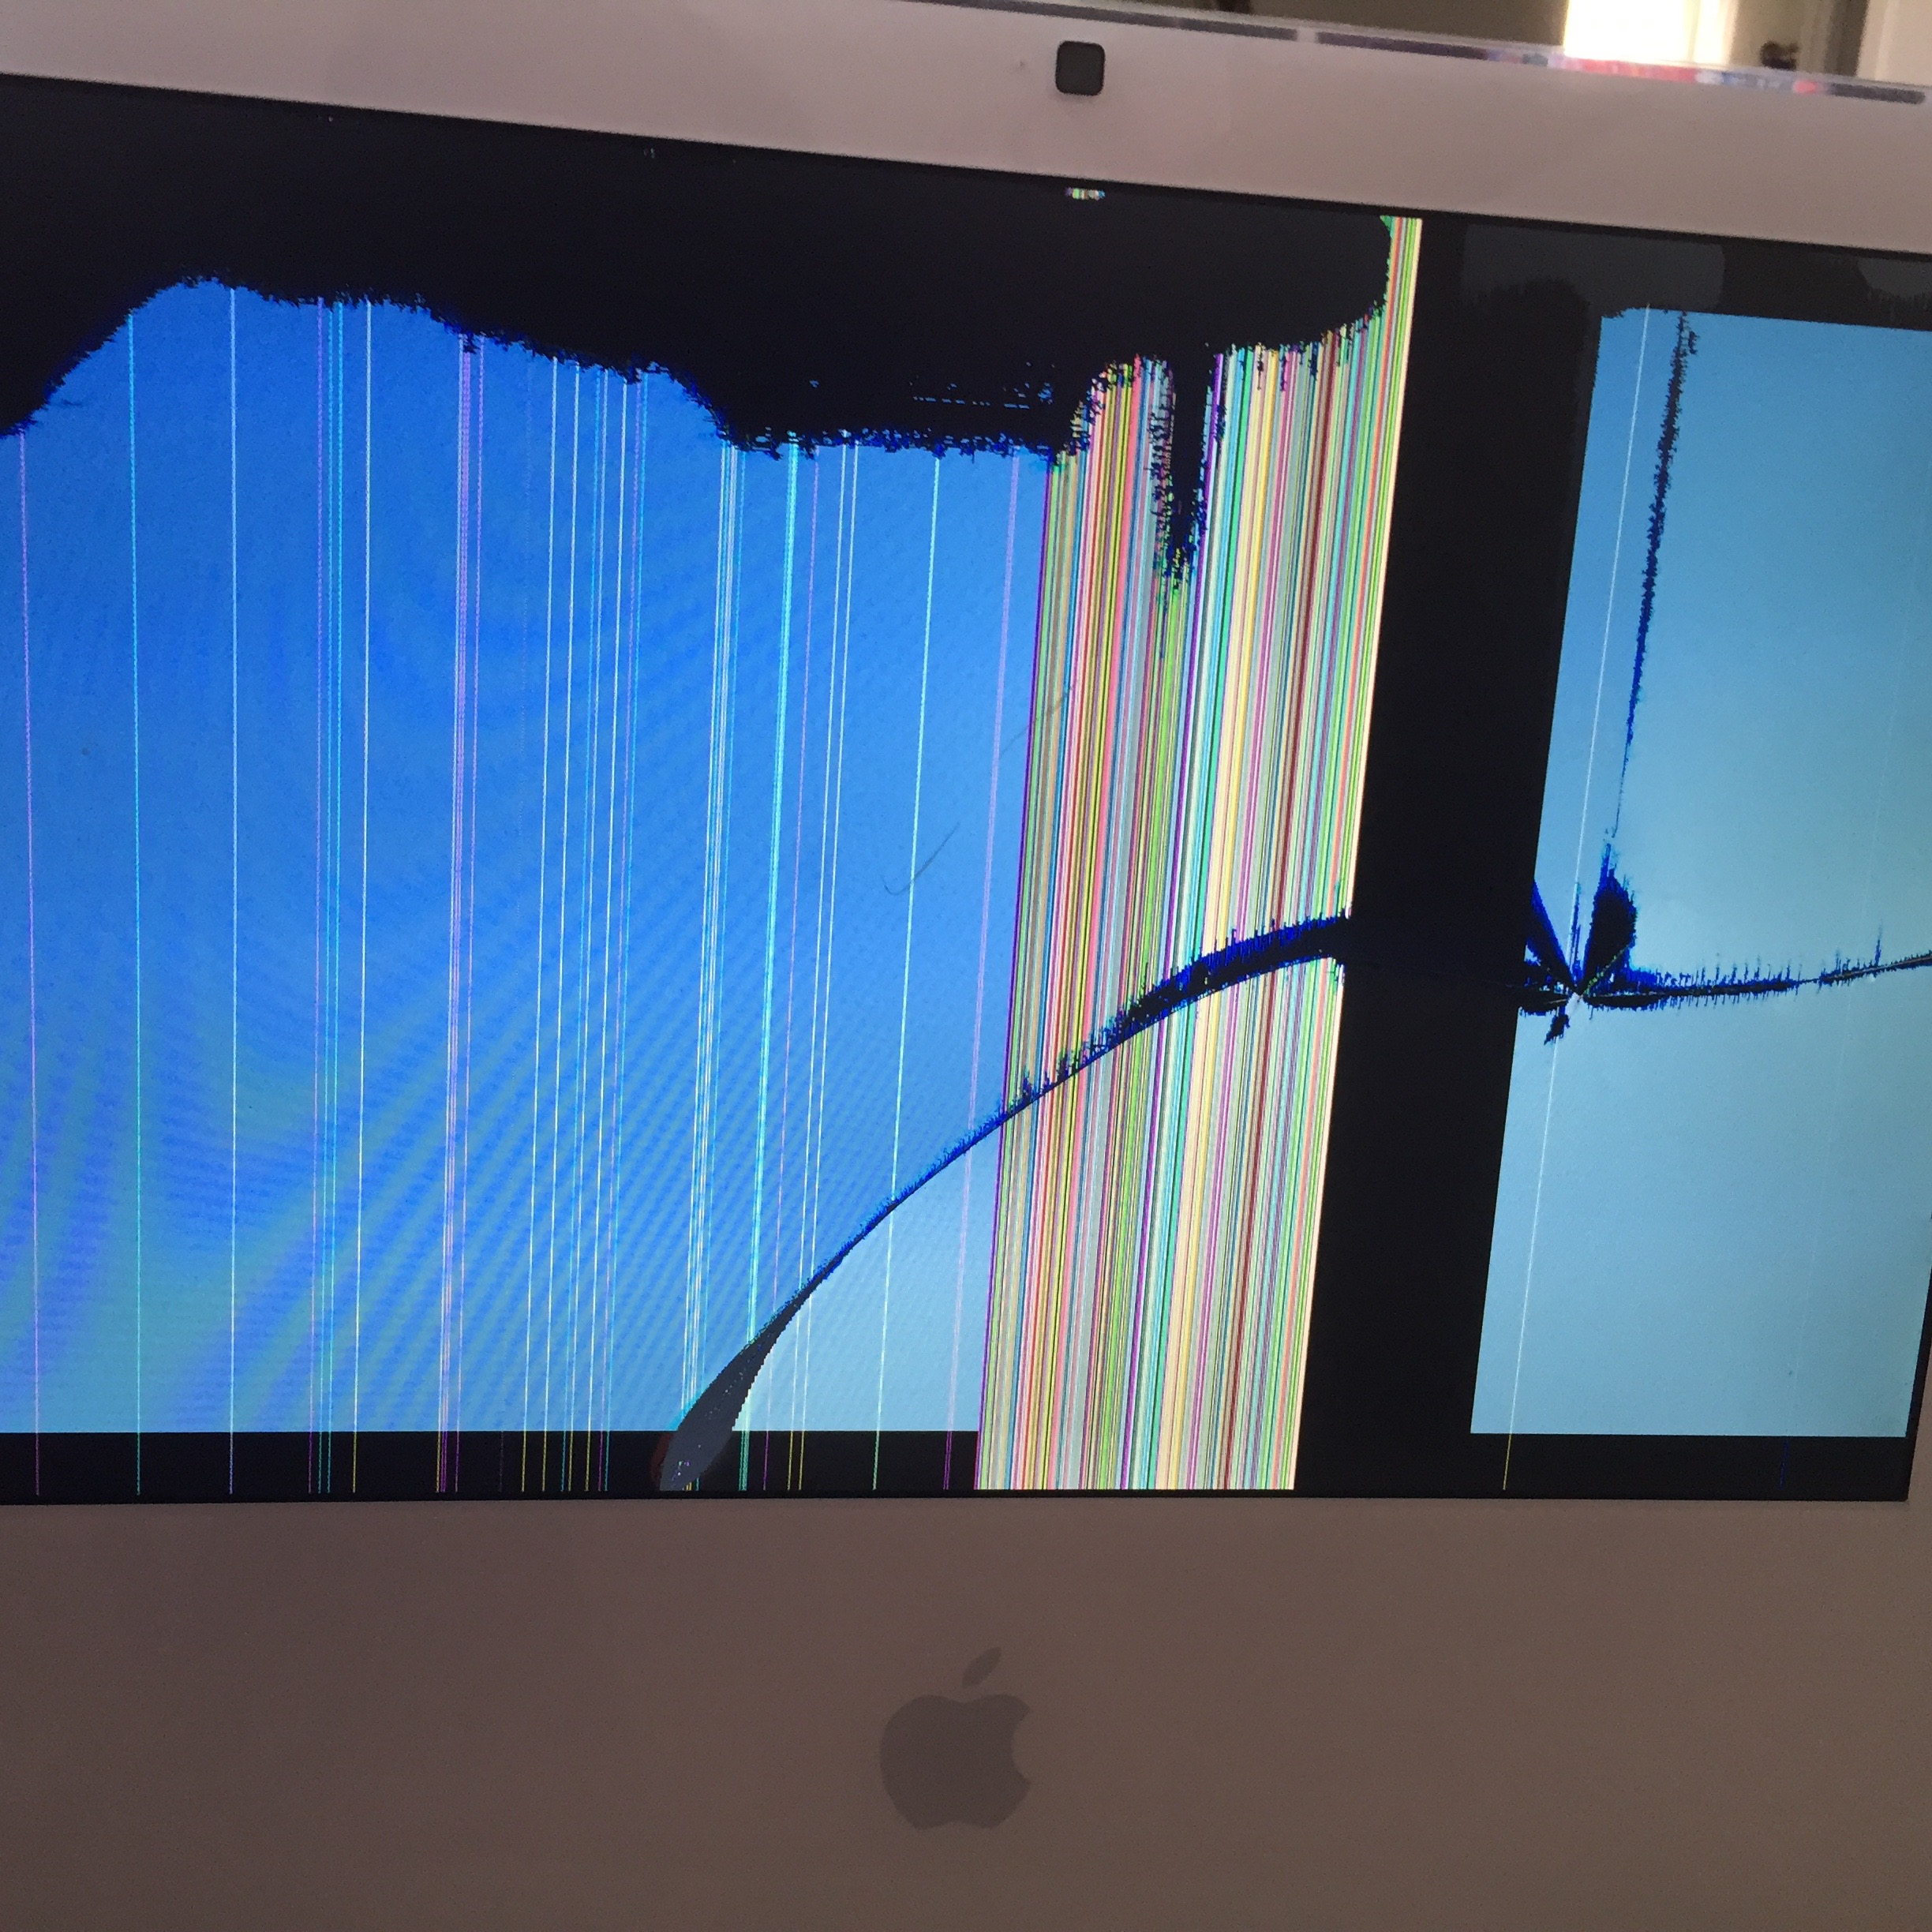 Replacing the LCD brought this iMac back to life